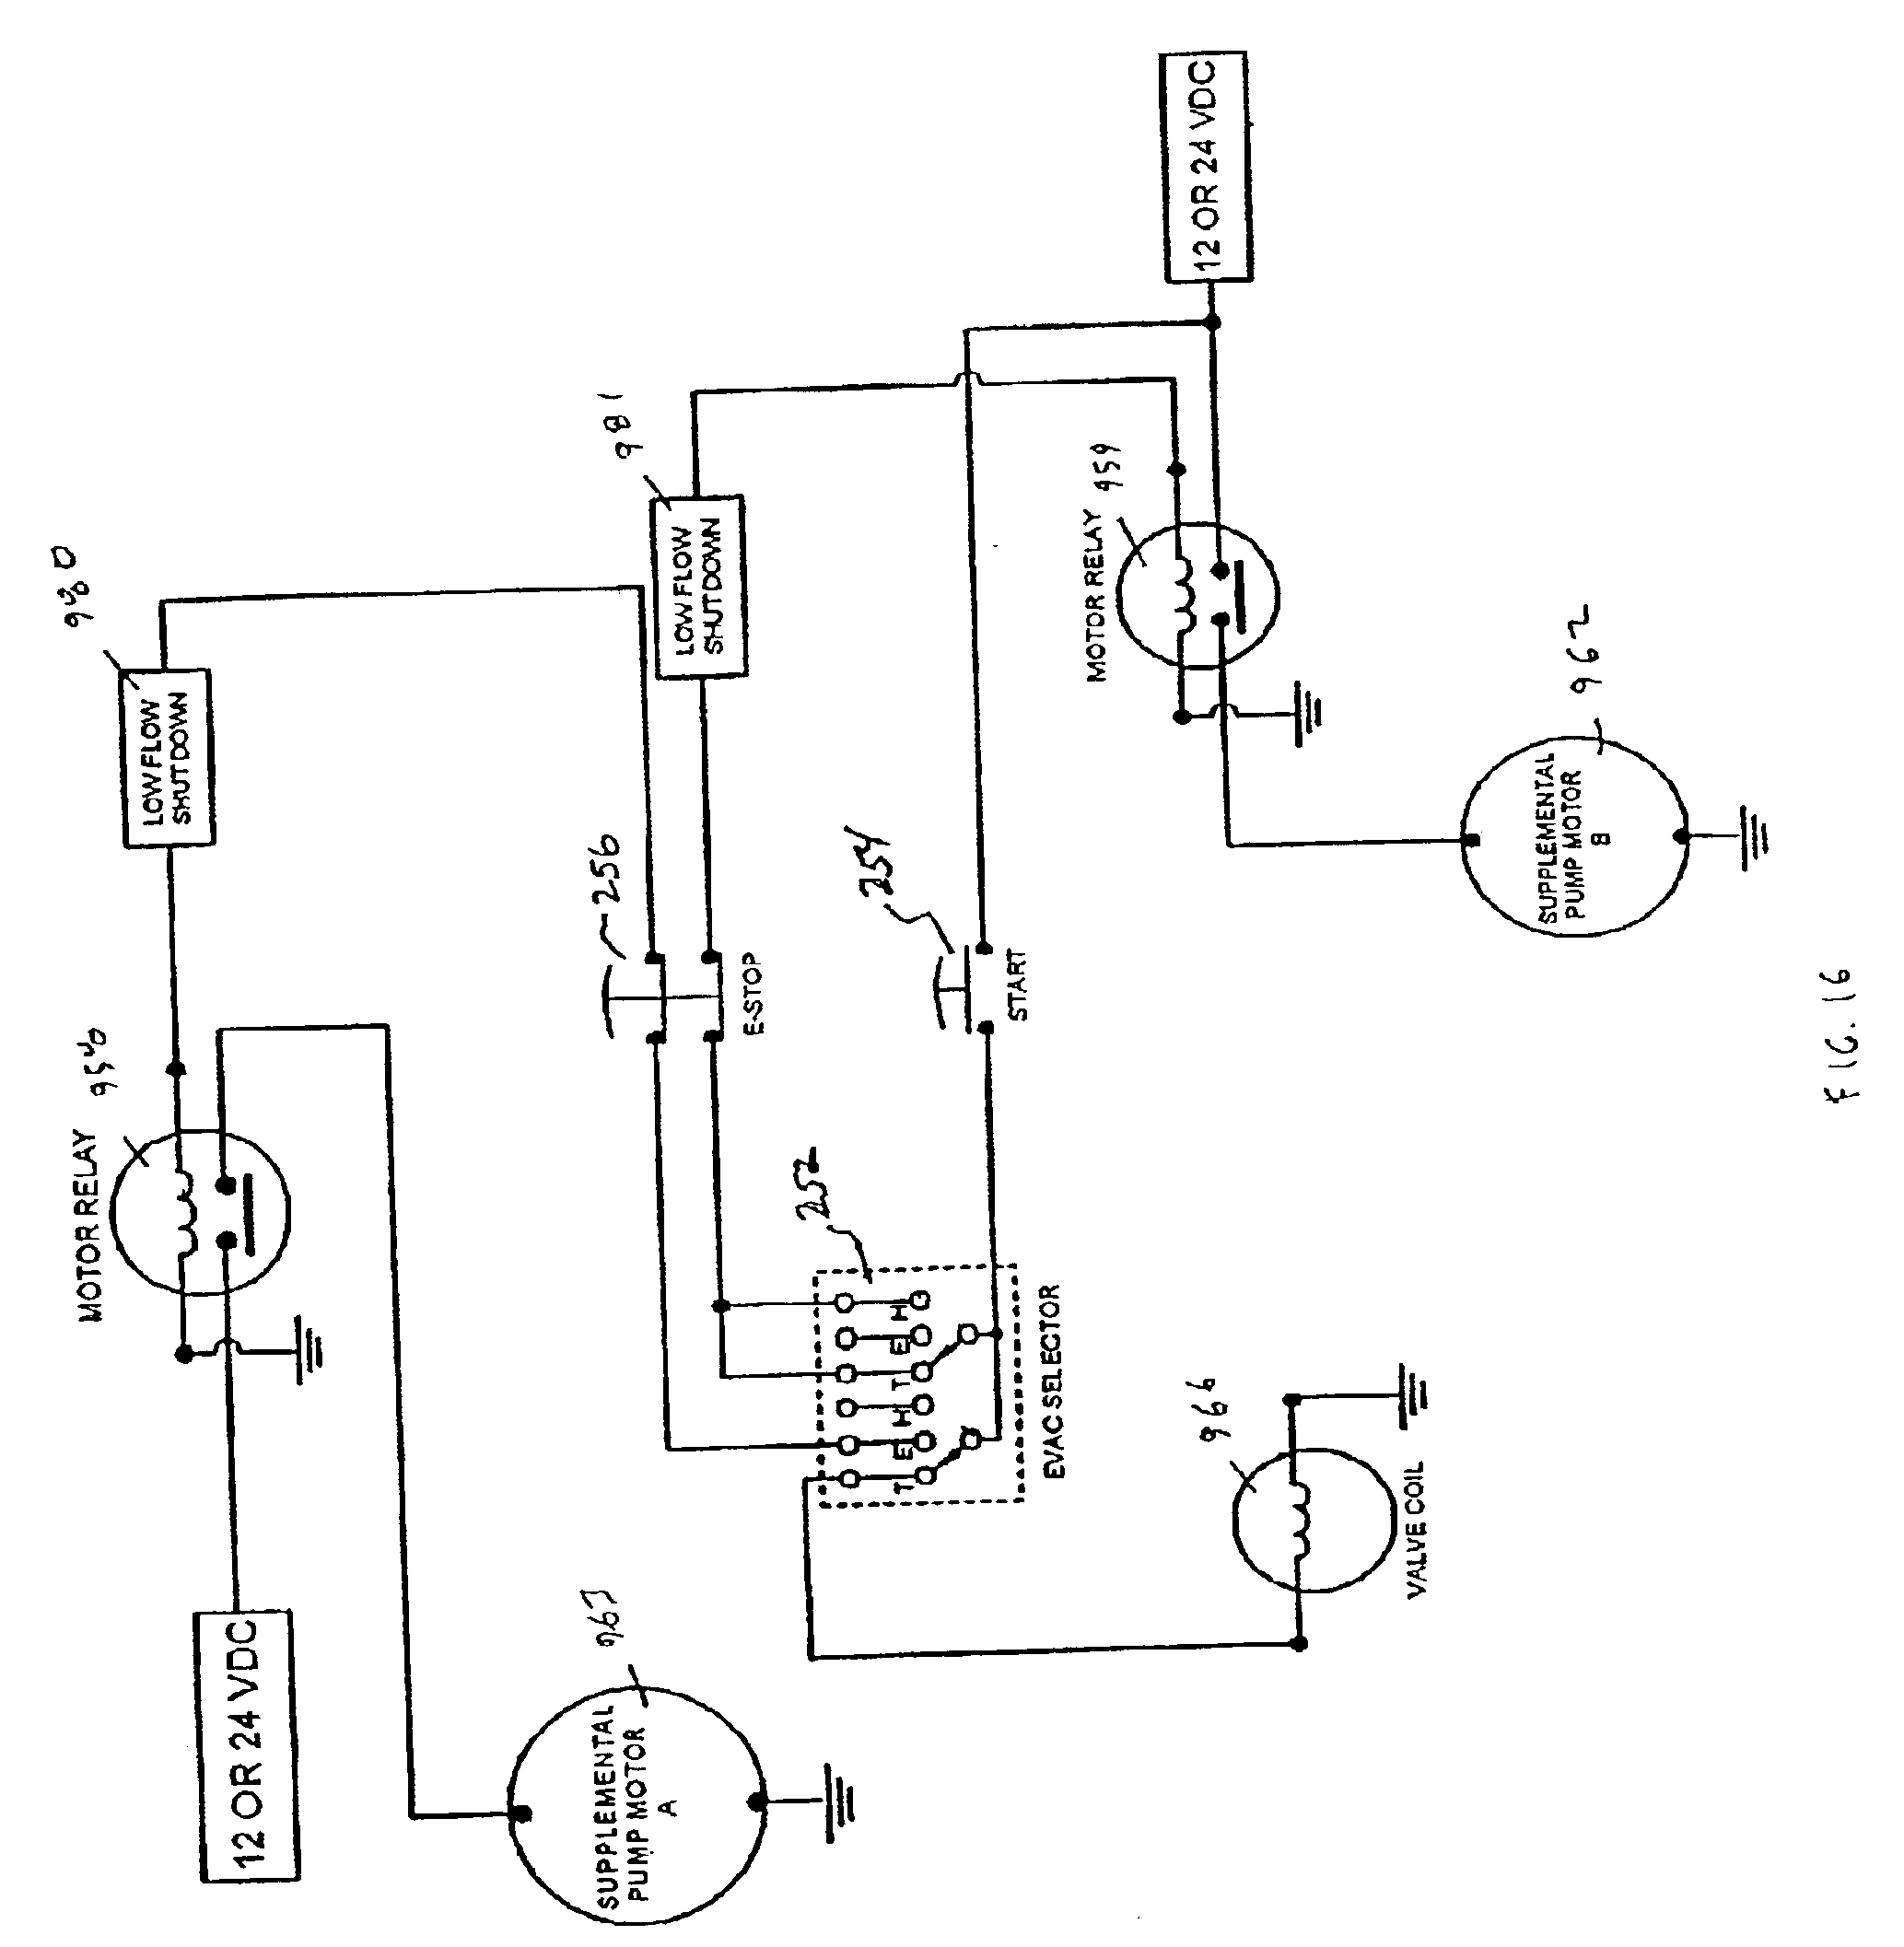 US06941969 20050913 D00013?resize\\\\\\\\\\\\\\\\=665%2C680 kawasaki fh580v wiring diagram kawasaki mower, kawasaki engine Kawasaki FH580V Mower Engines at creativeand.co